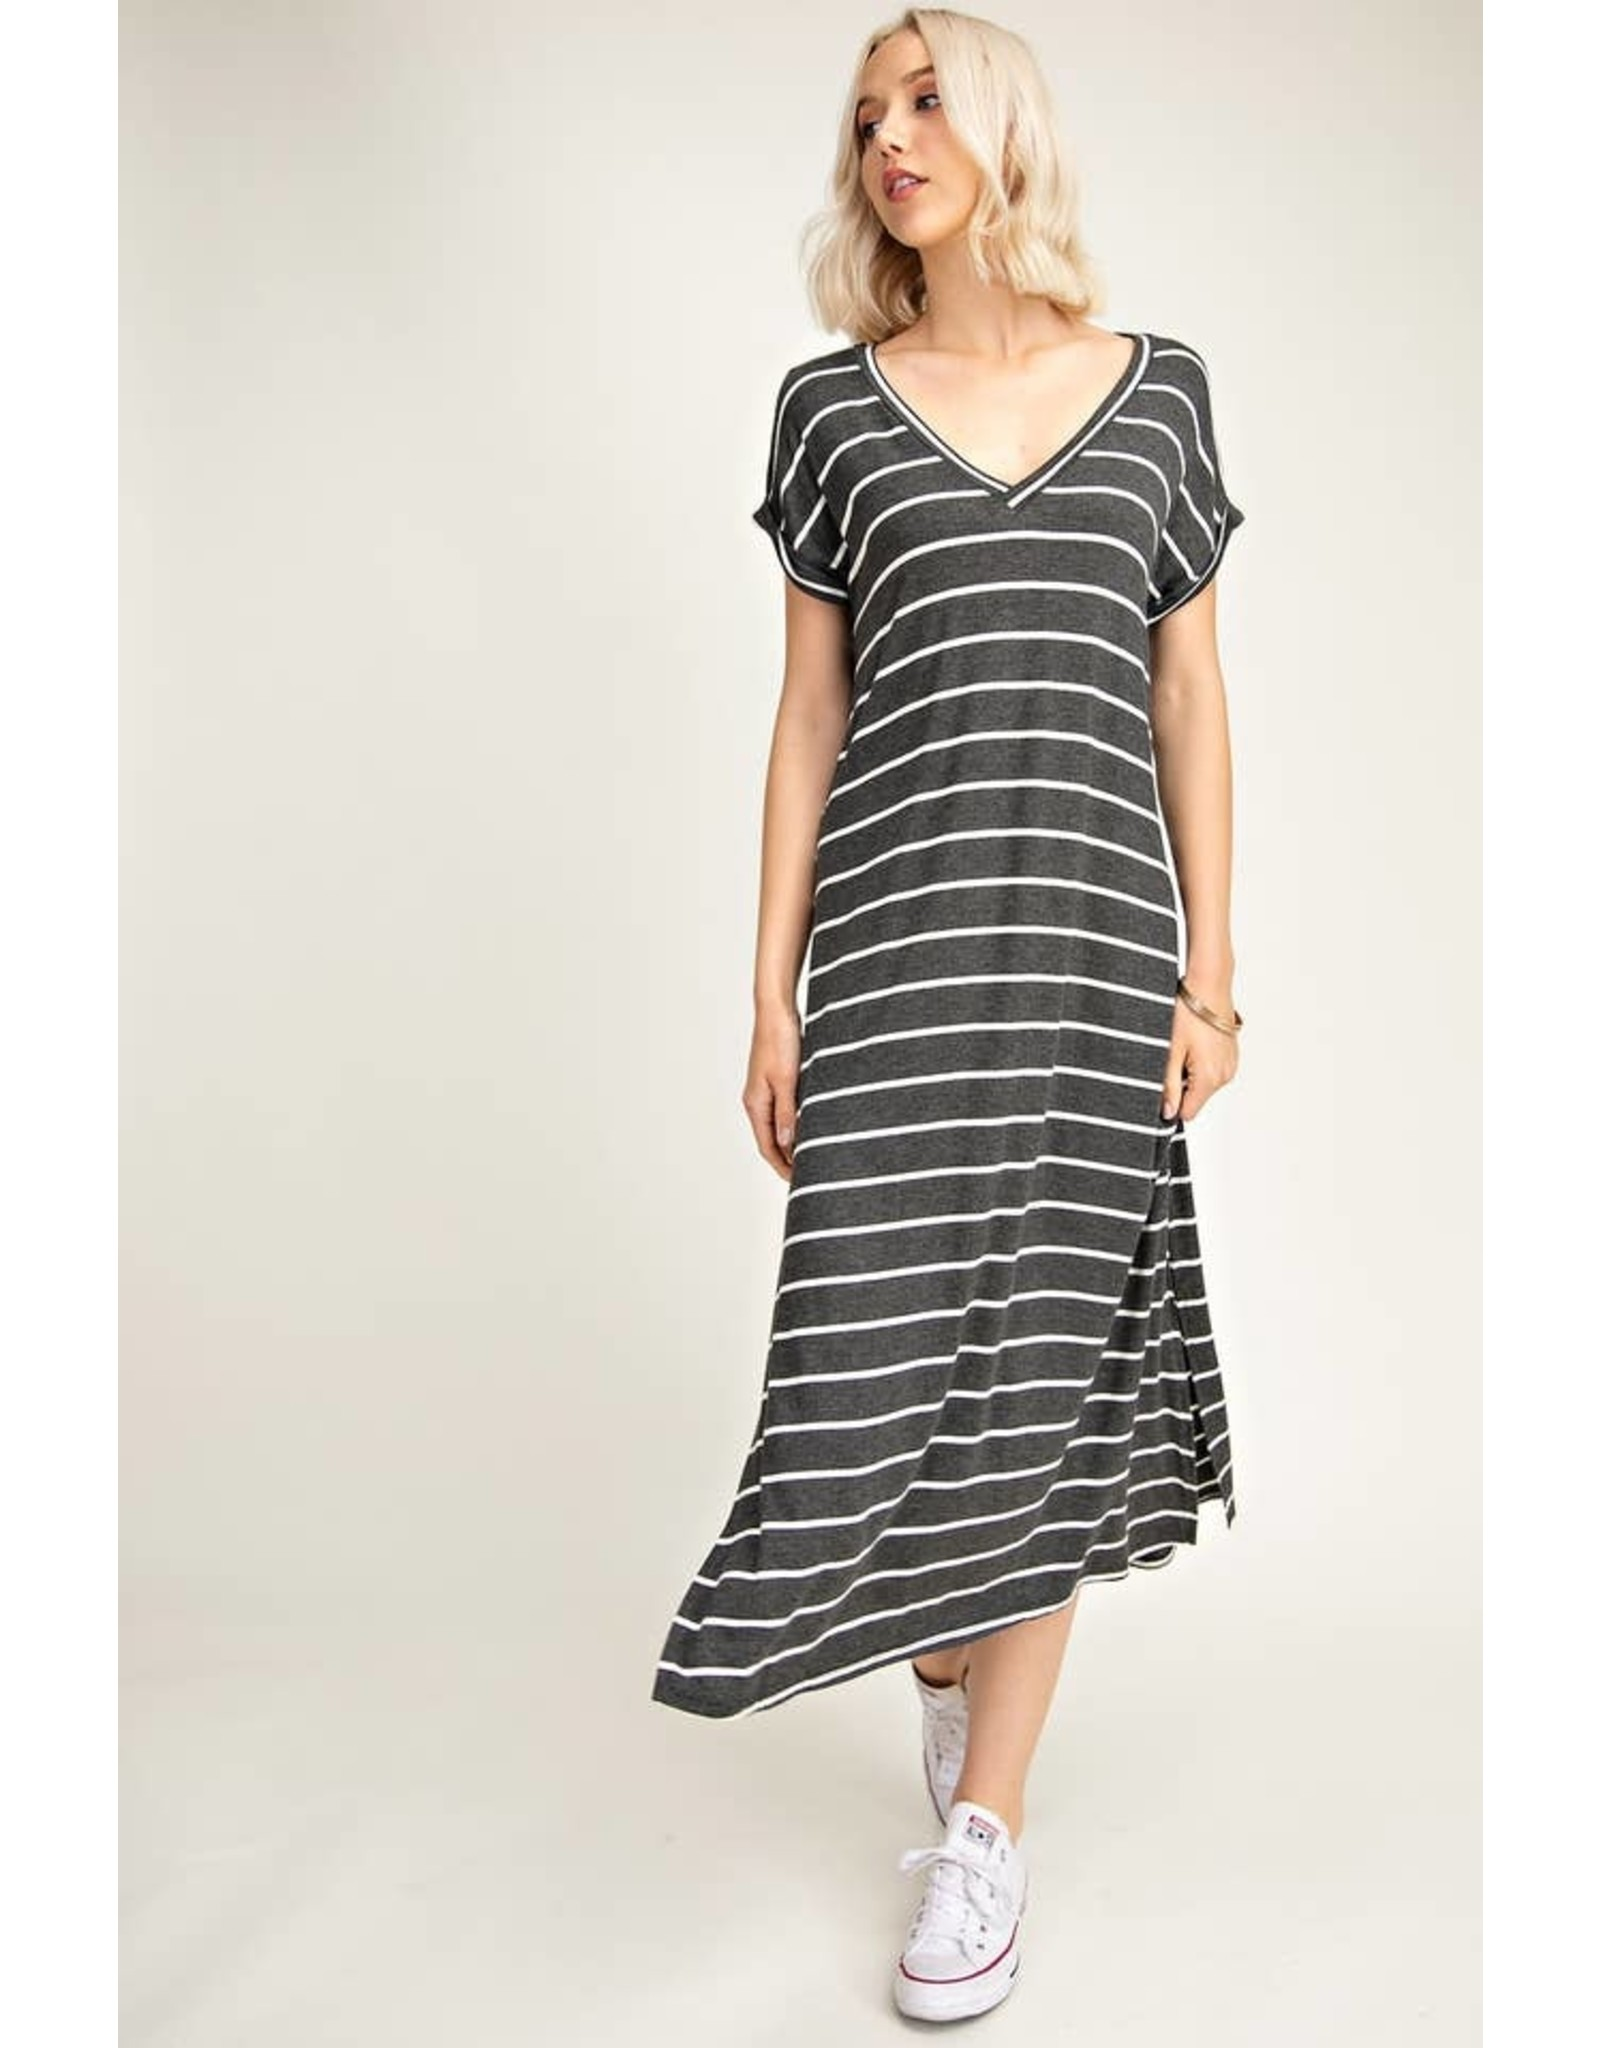 CHARCOAL / WHITE STRIPE V-NECK MIDI DRESS